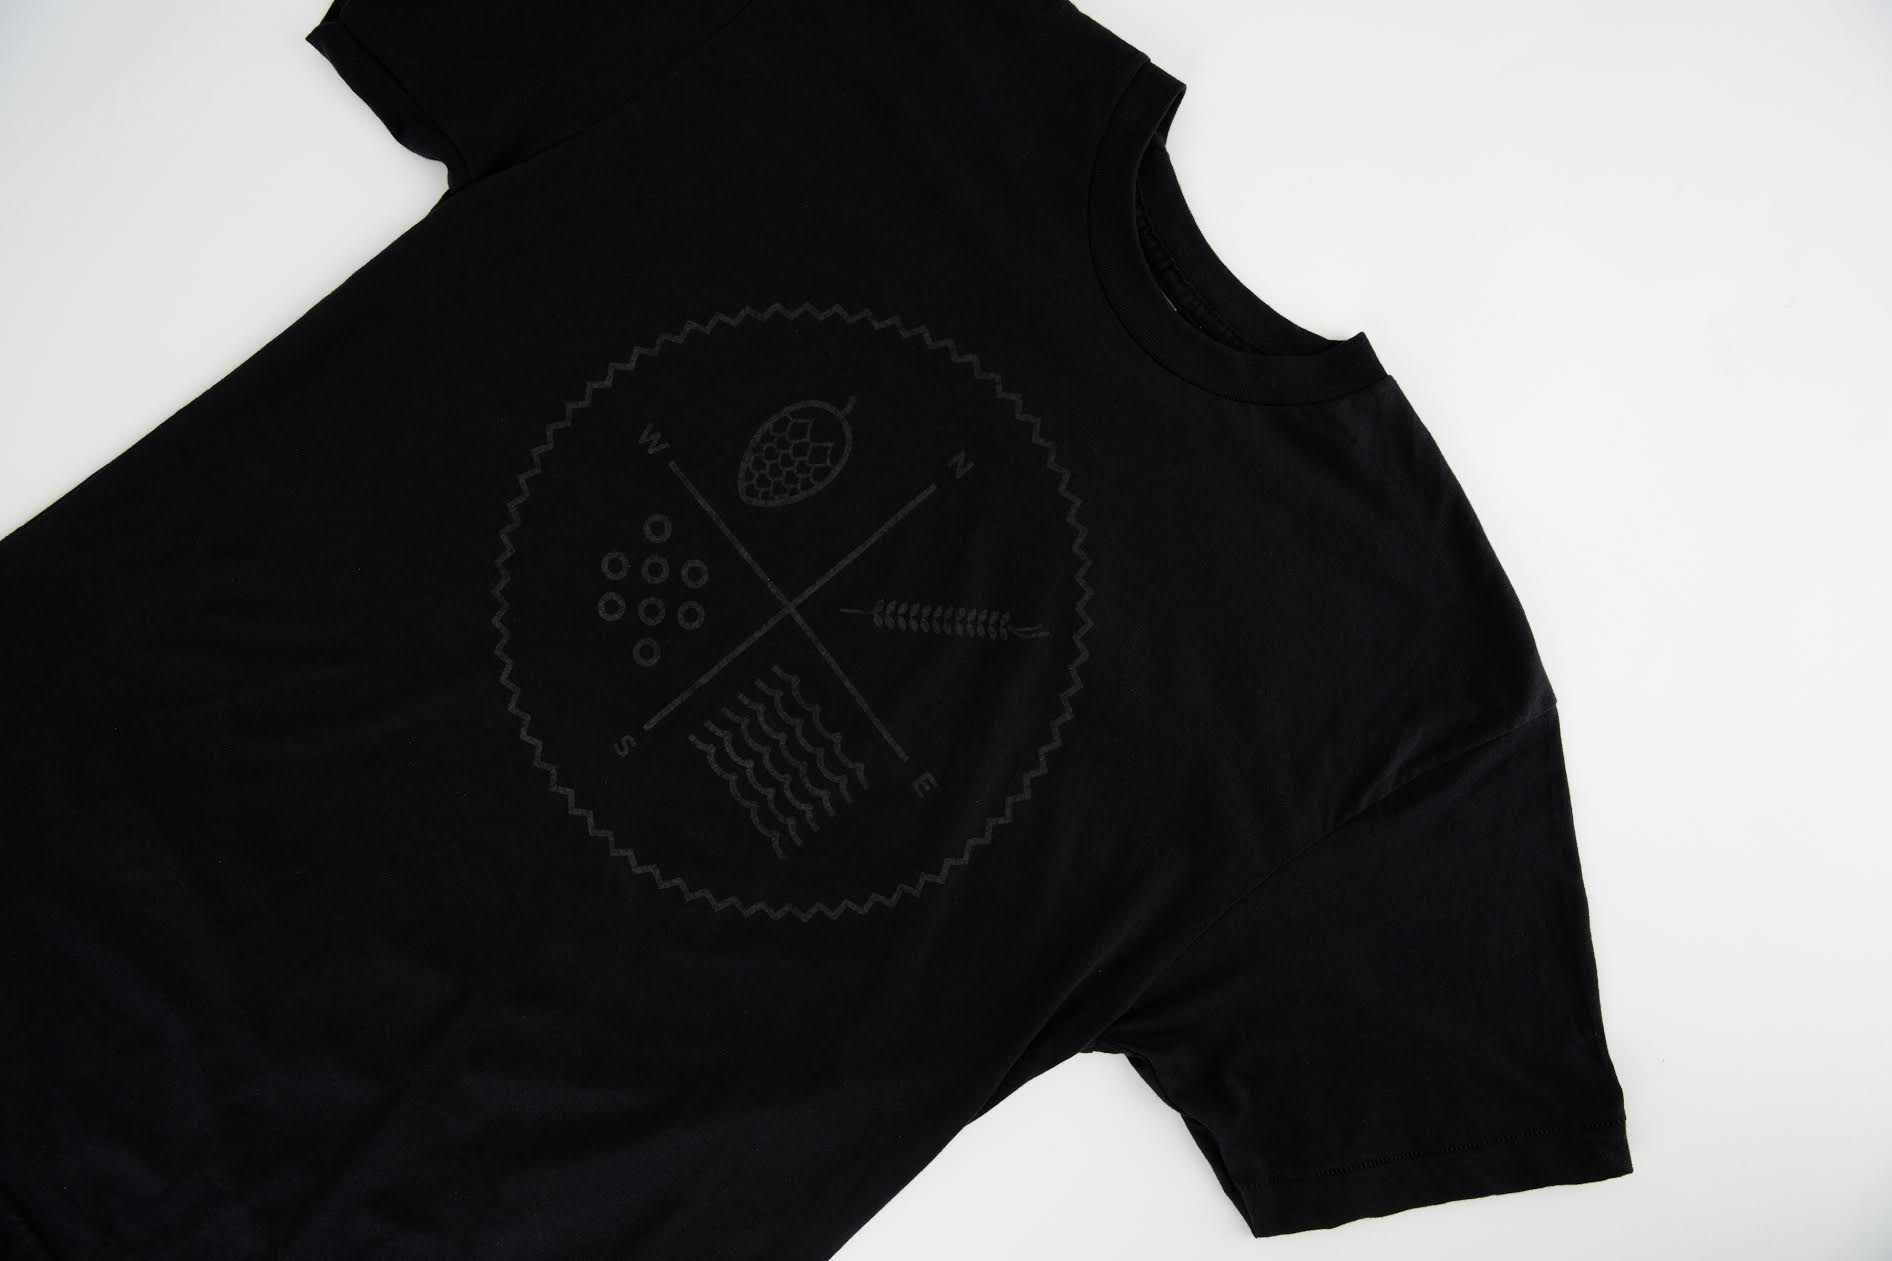 Black on Black Tee (circle logo)